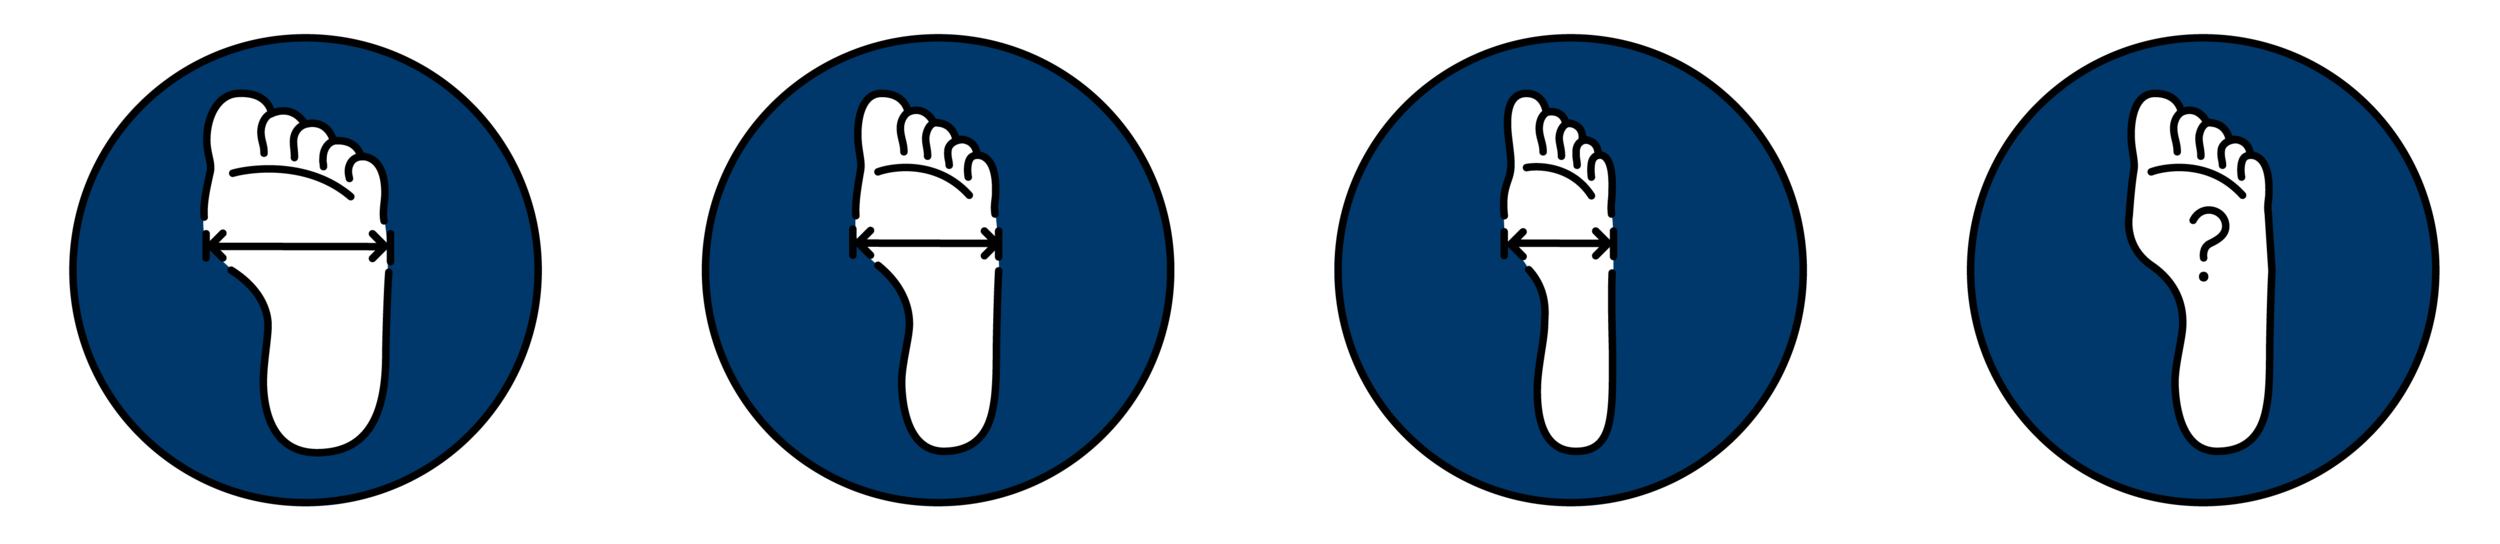 Gear-Finder-Icons-04.png